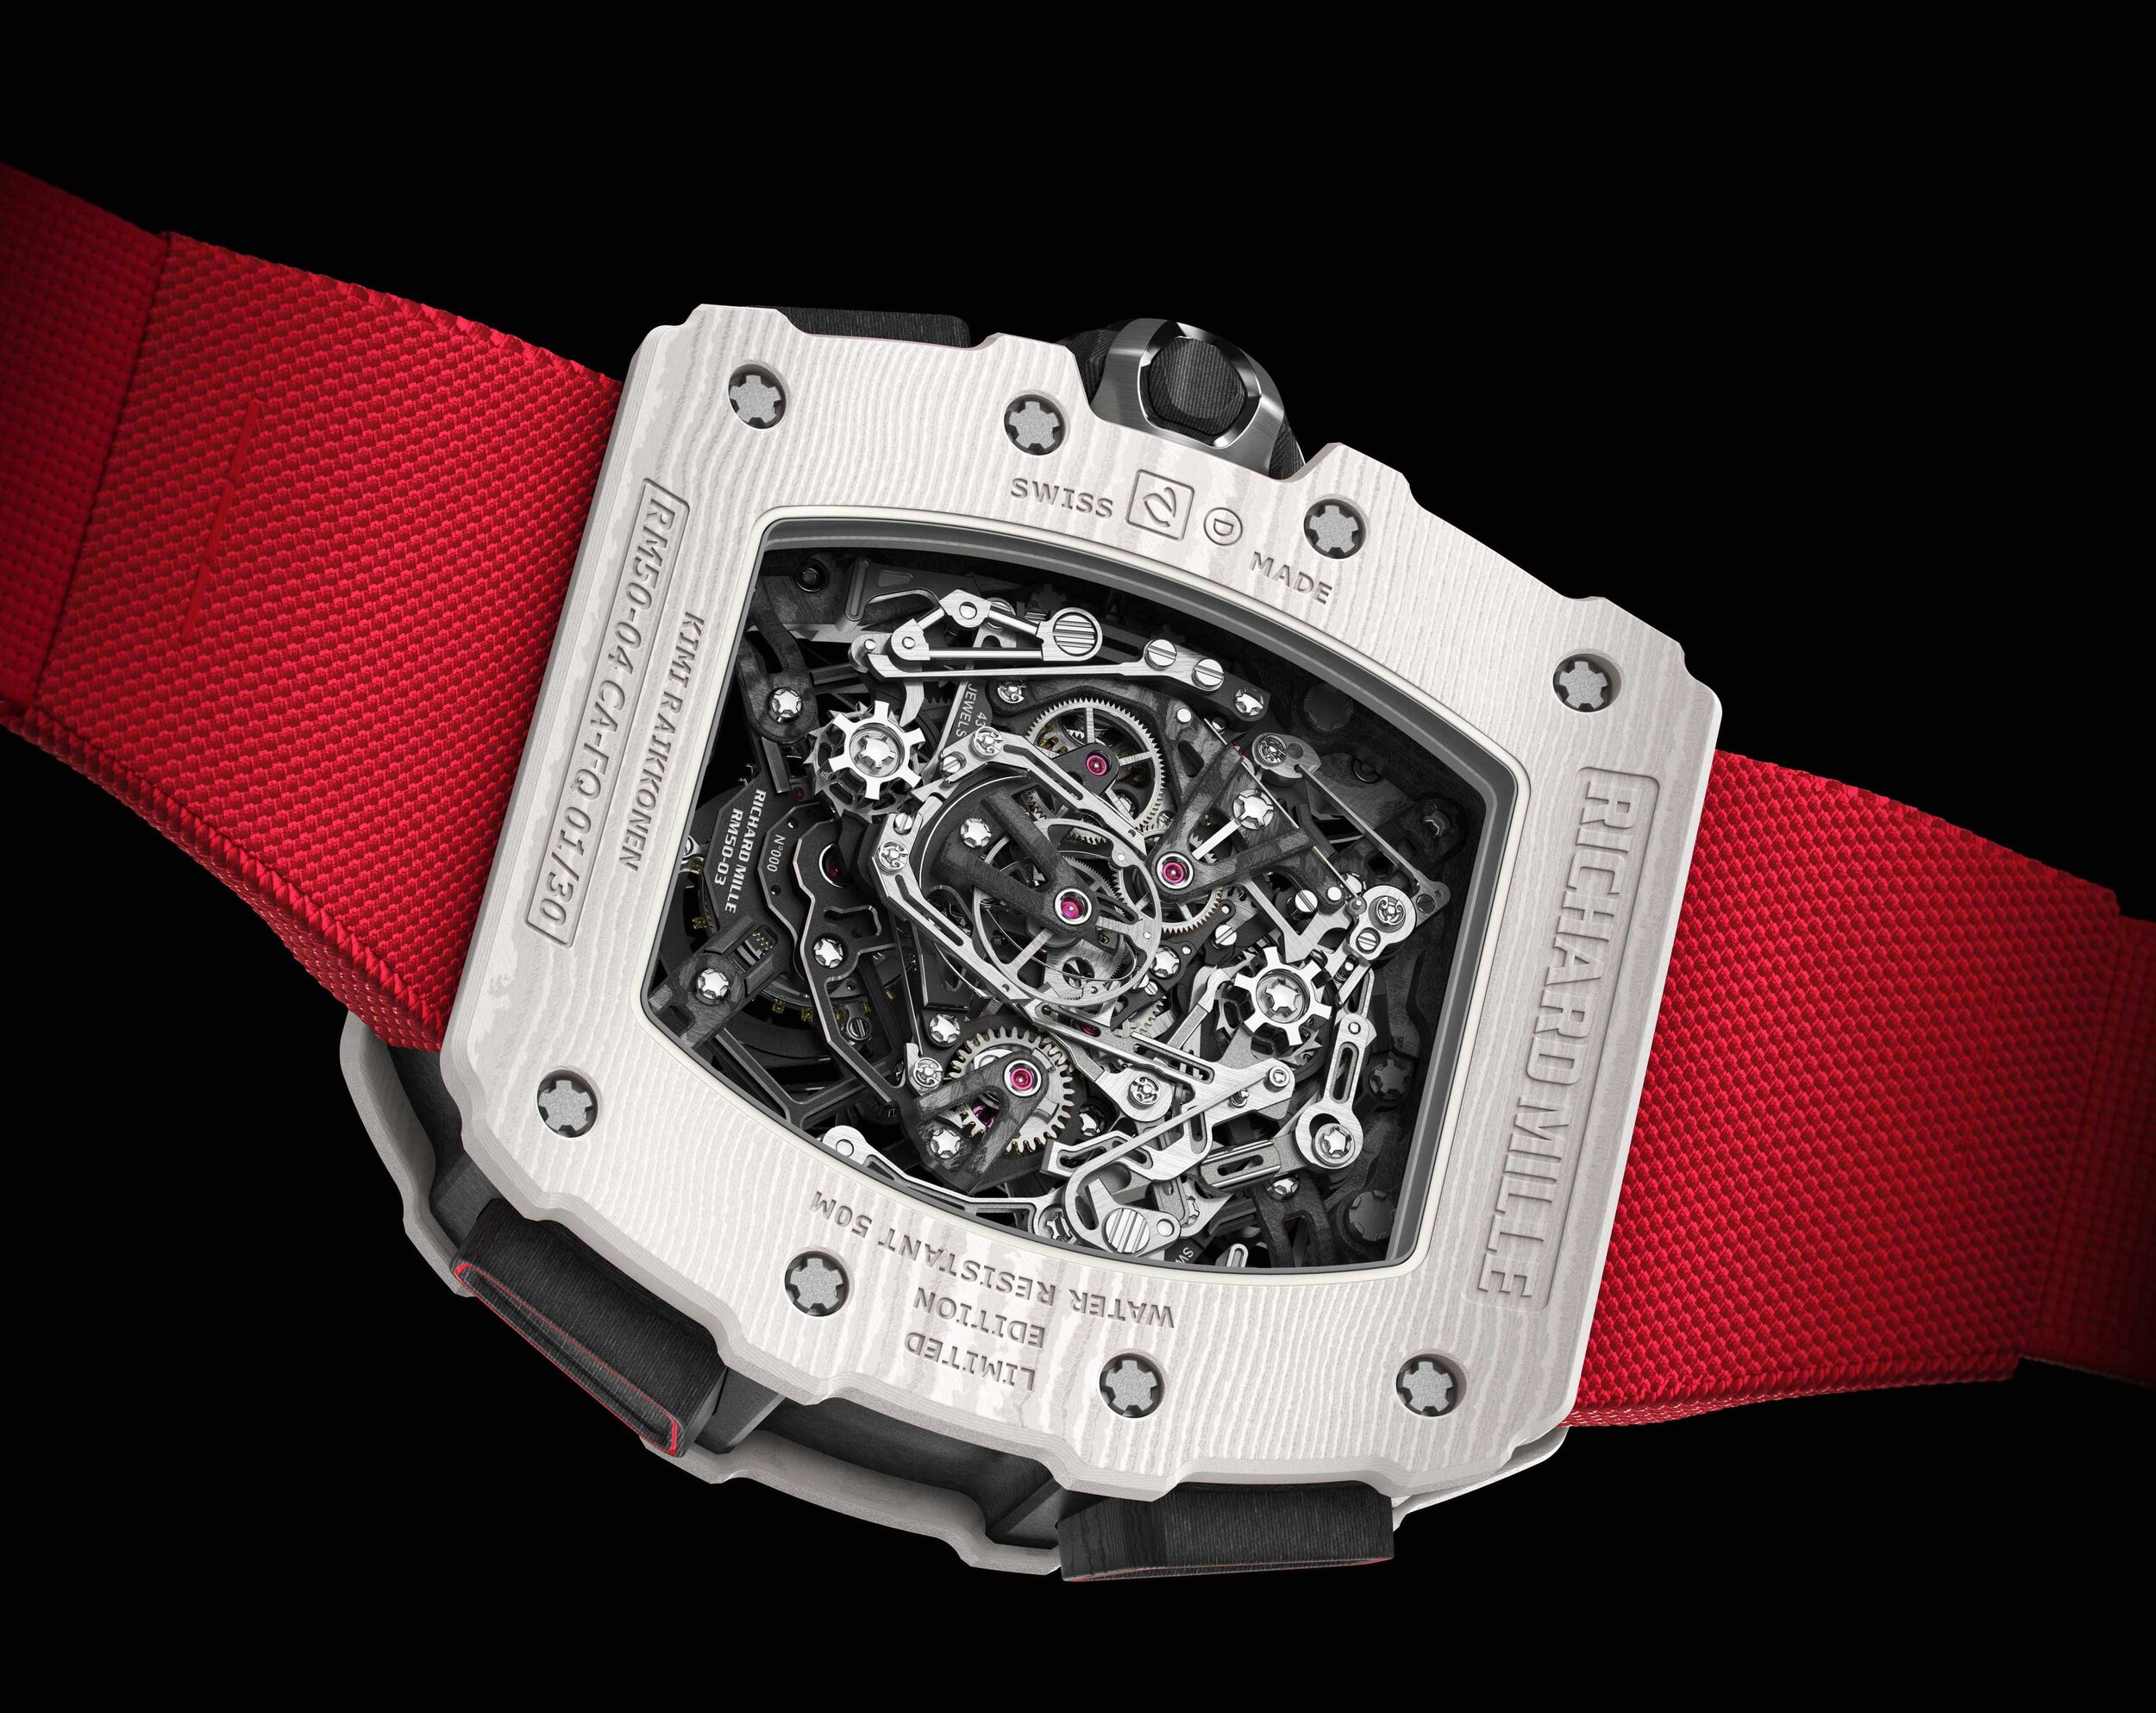 Richard Mille RM 50-04 Kimi Raikkonen Case Back